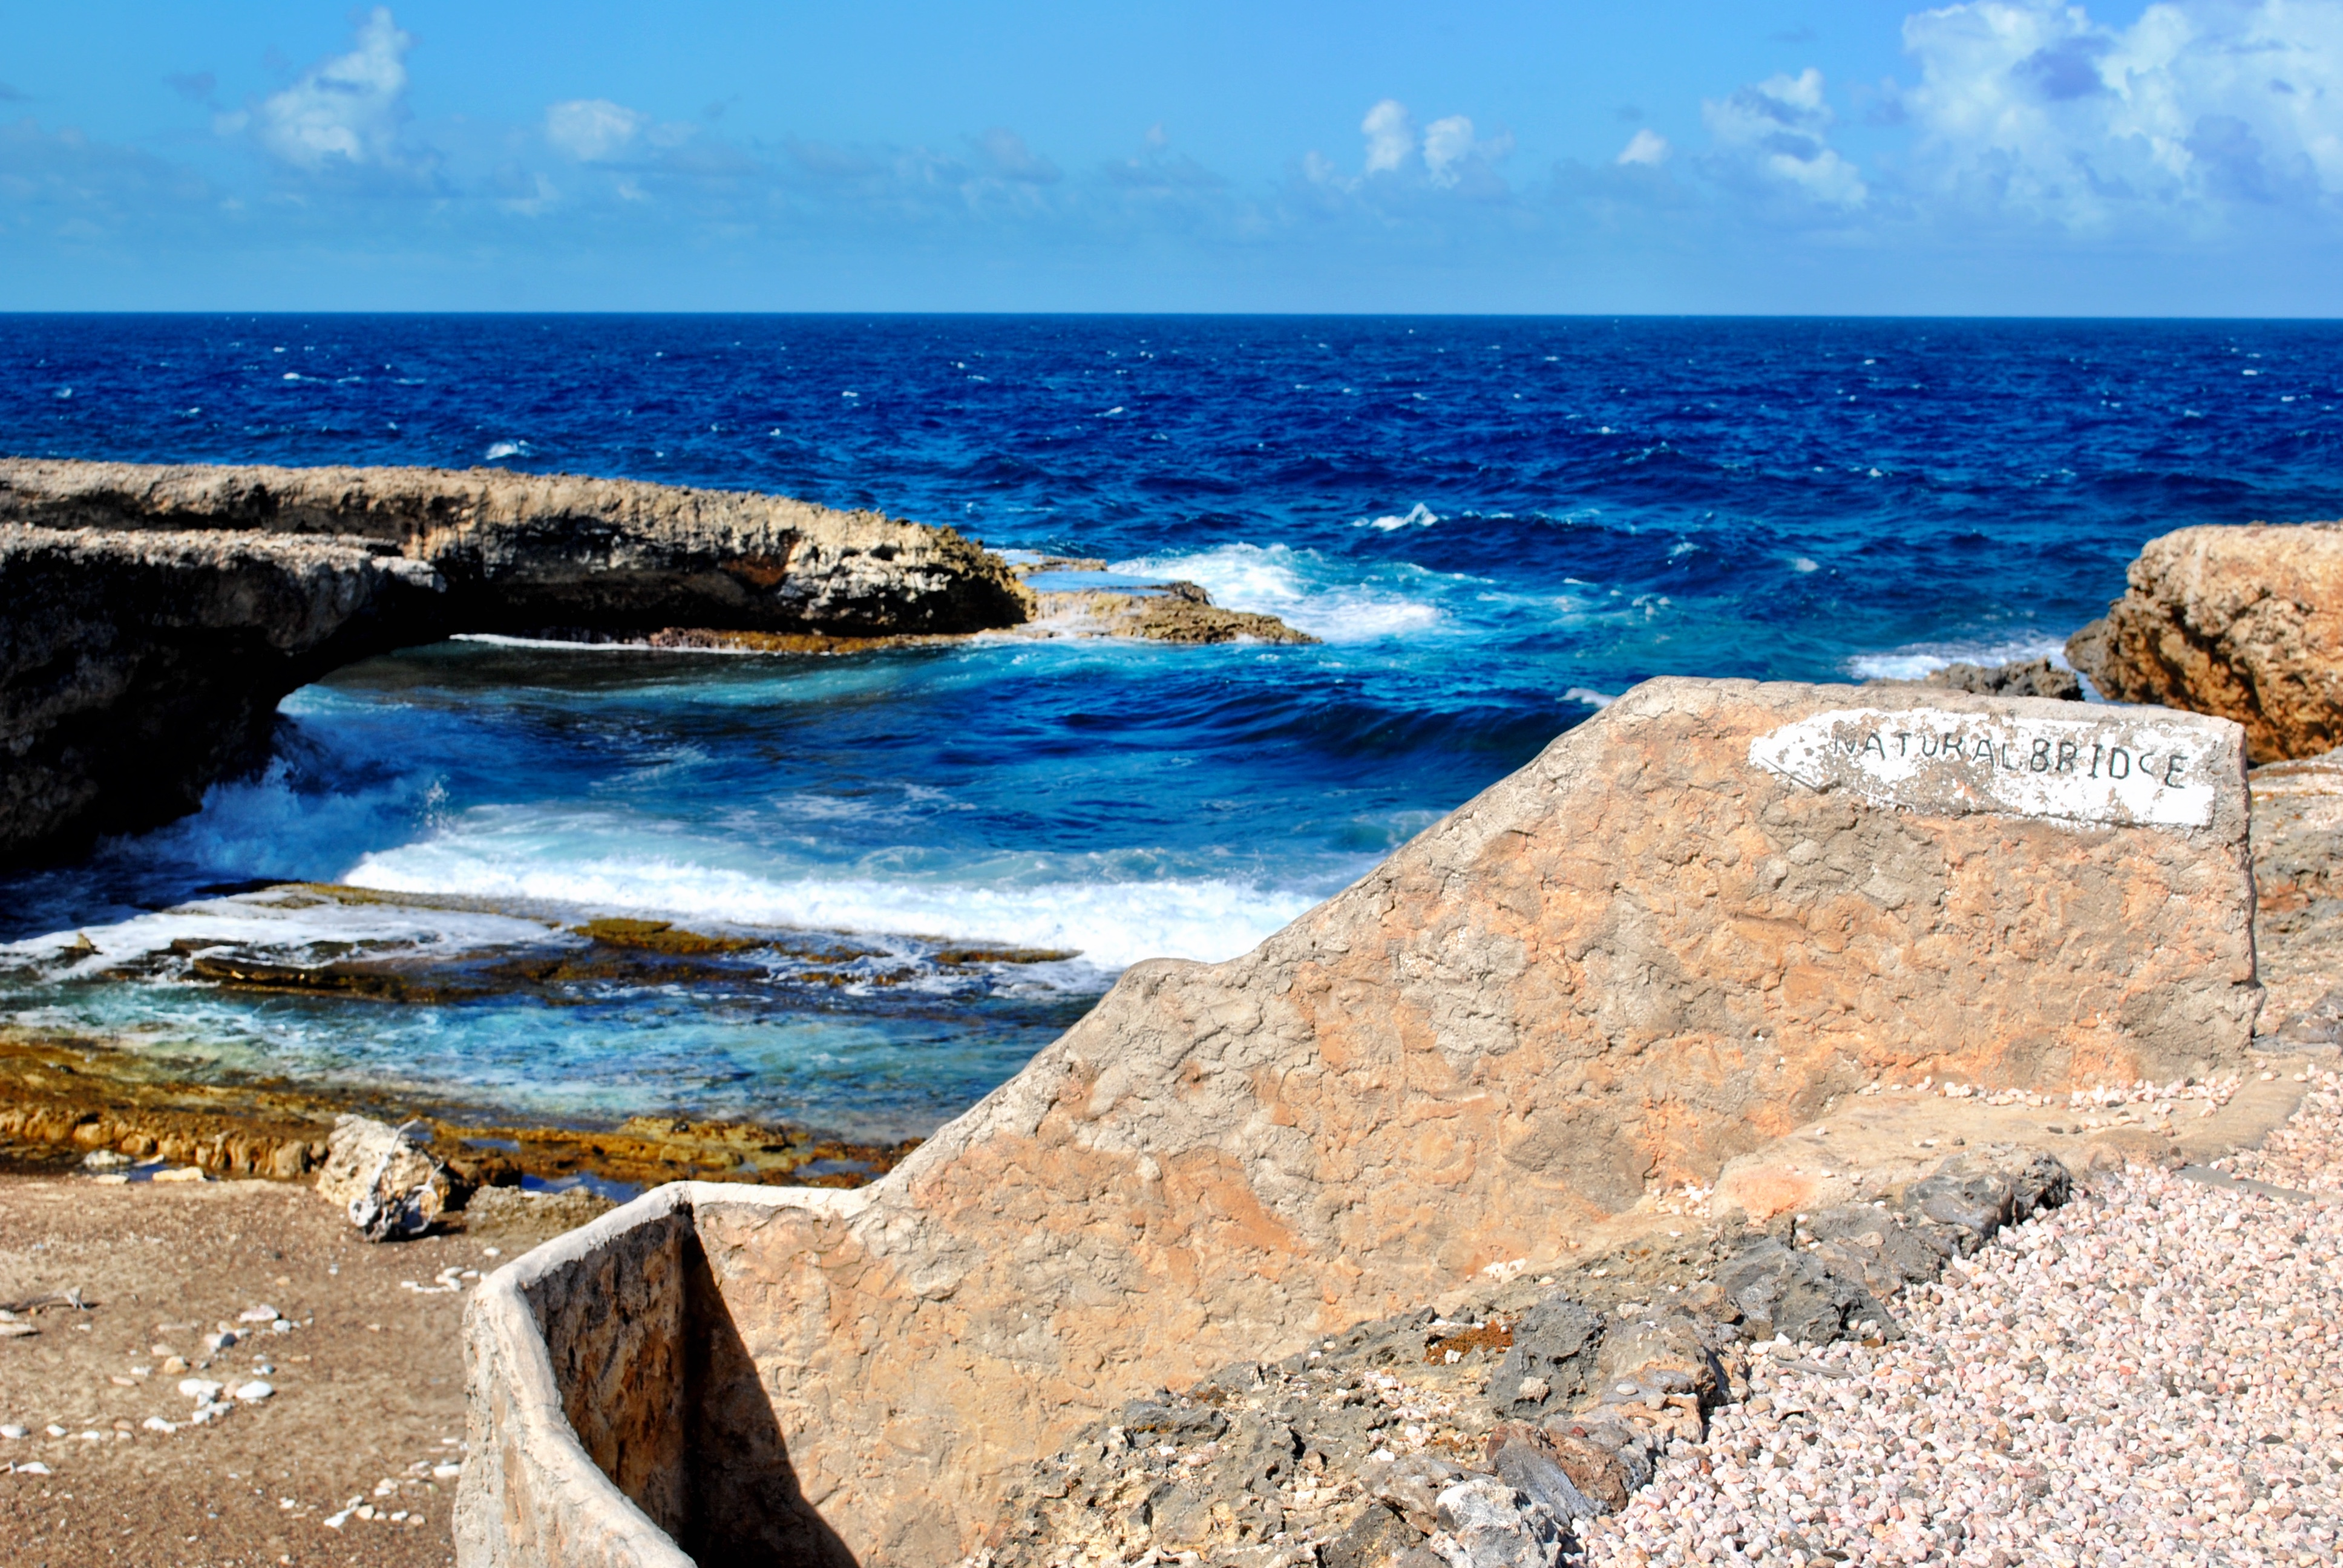 Natural Bridge View at Shete Boka National Park in Curacao